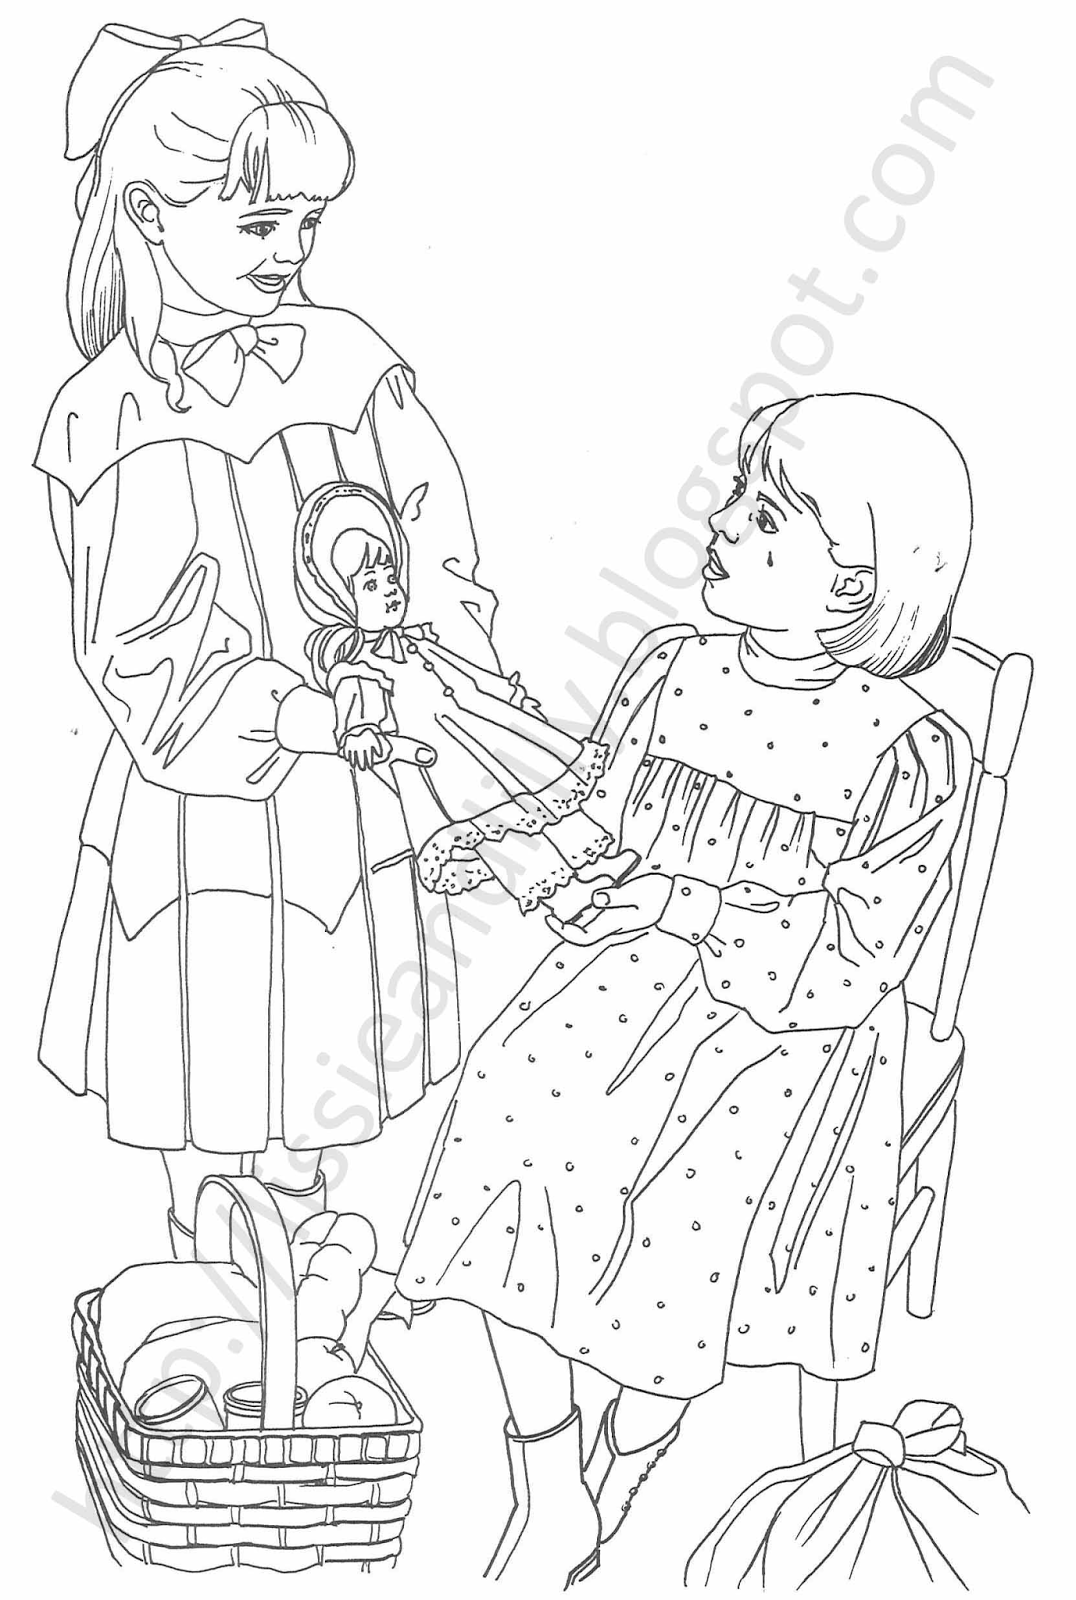 Lissie & Lilly: Coloring Pages